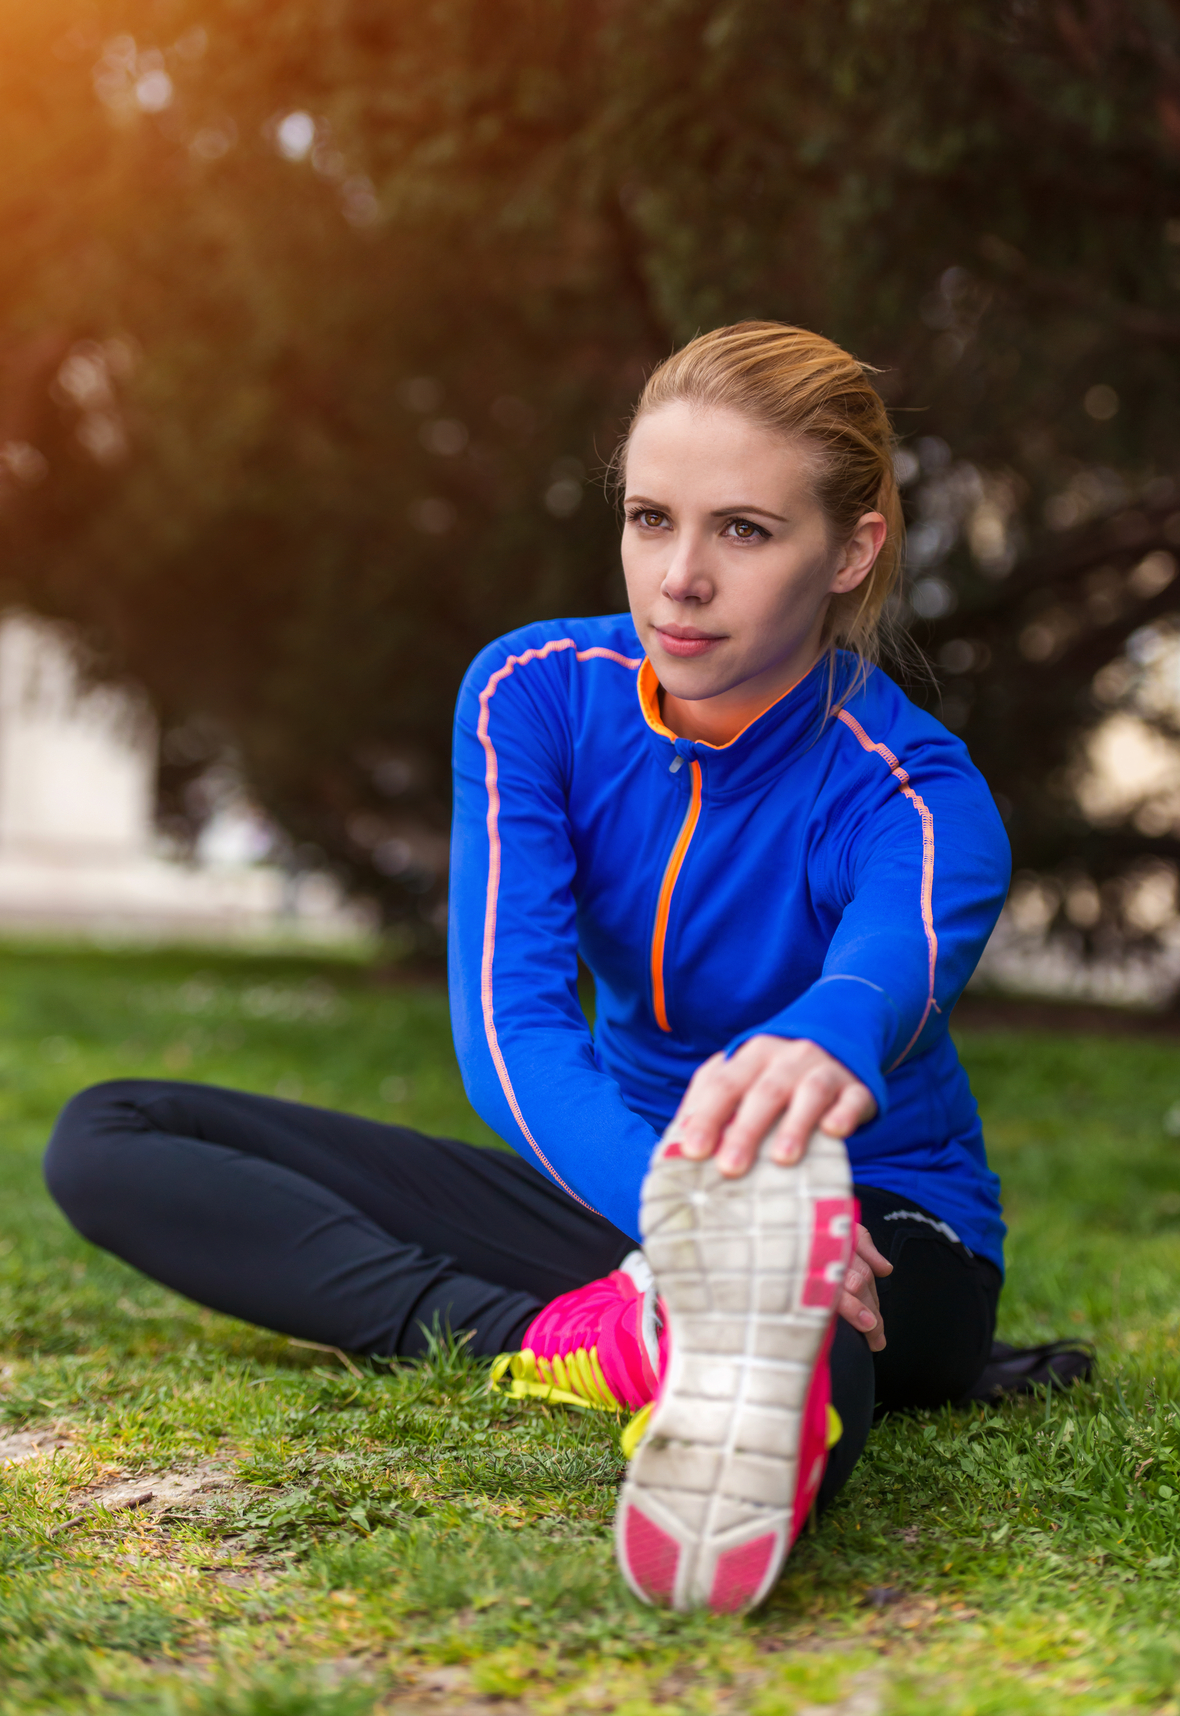 graphicstock-young-runner-stretching-before-the-city-race SAe5ufKTb-